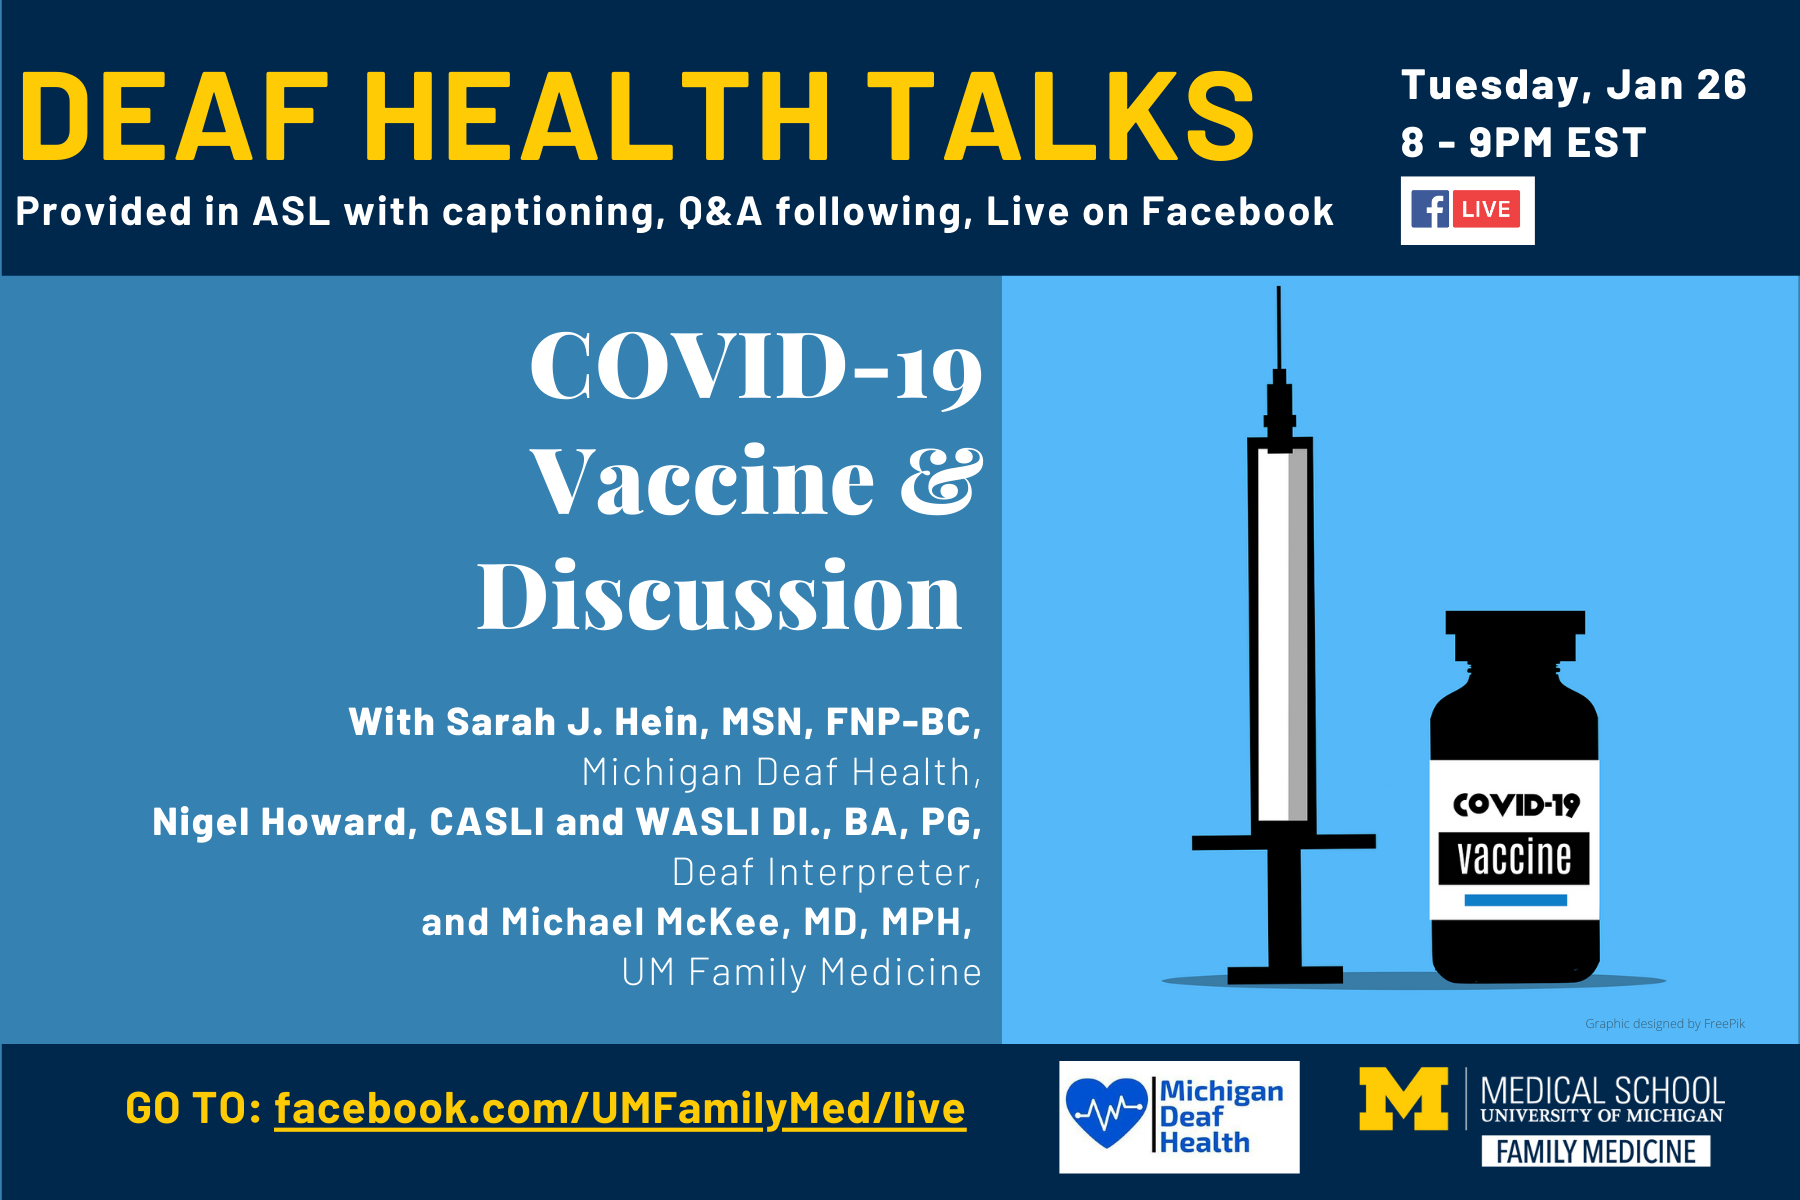 Deaf Health Talks Provided in ASL with captioning Q&A following, live on facebook, Tuesday, Jan 26, 8 to 9 PM EST. COVID-19 Vaccine and Discussion with Sarah J. Hein, MSN, FNP-BC, Michigan Deaf Health, Nigel HOward, CASLI and WASLI DI, BA, PG Deaf Interpr